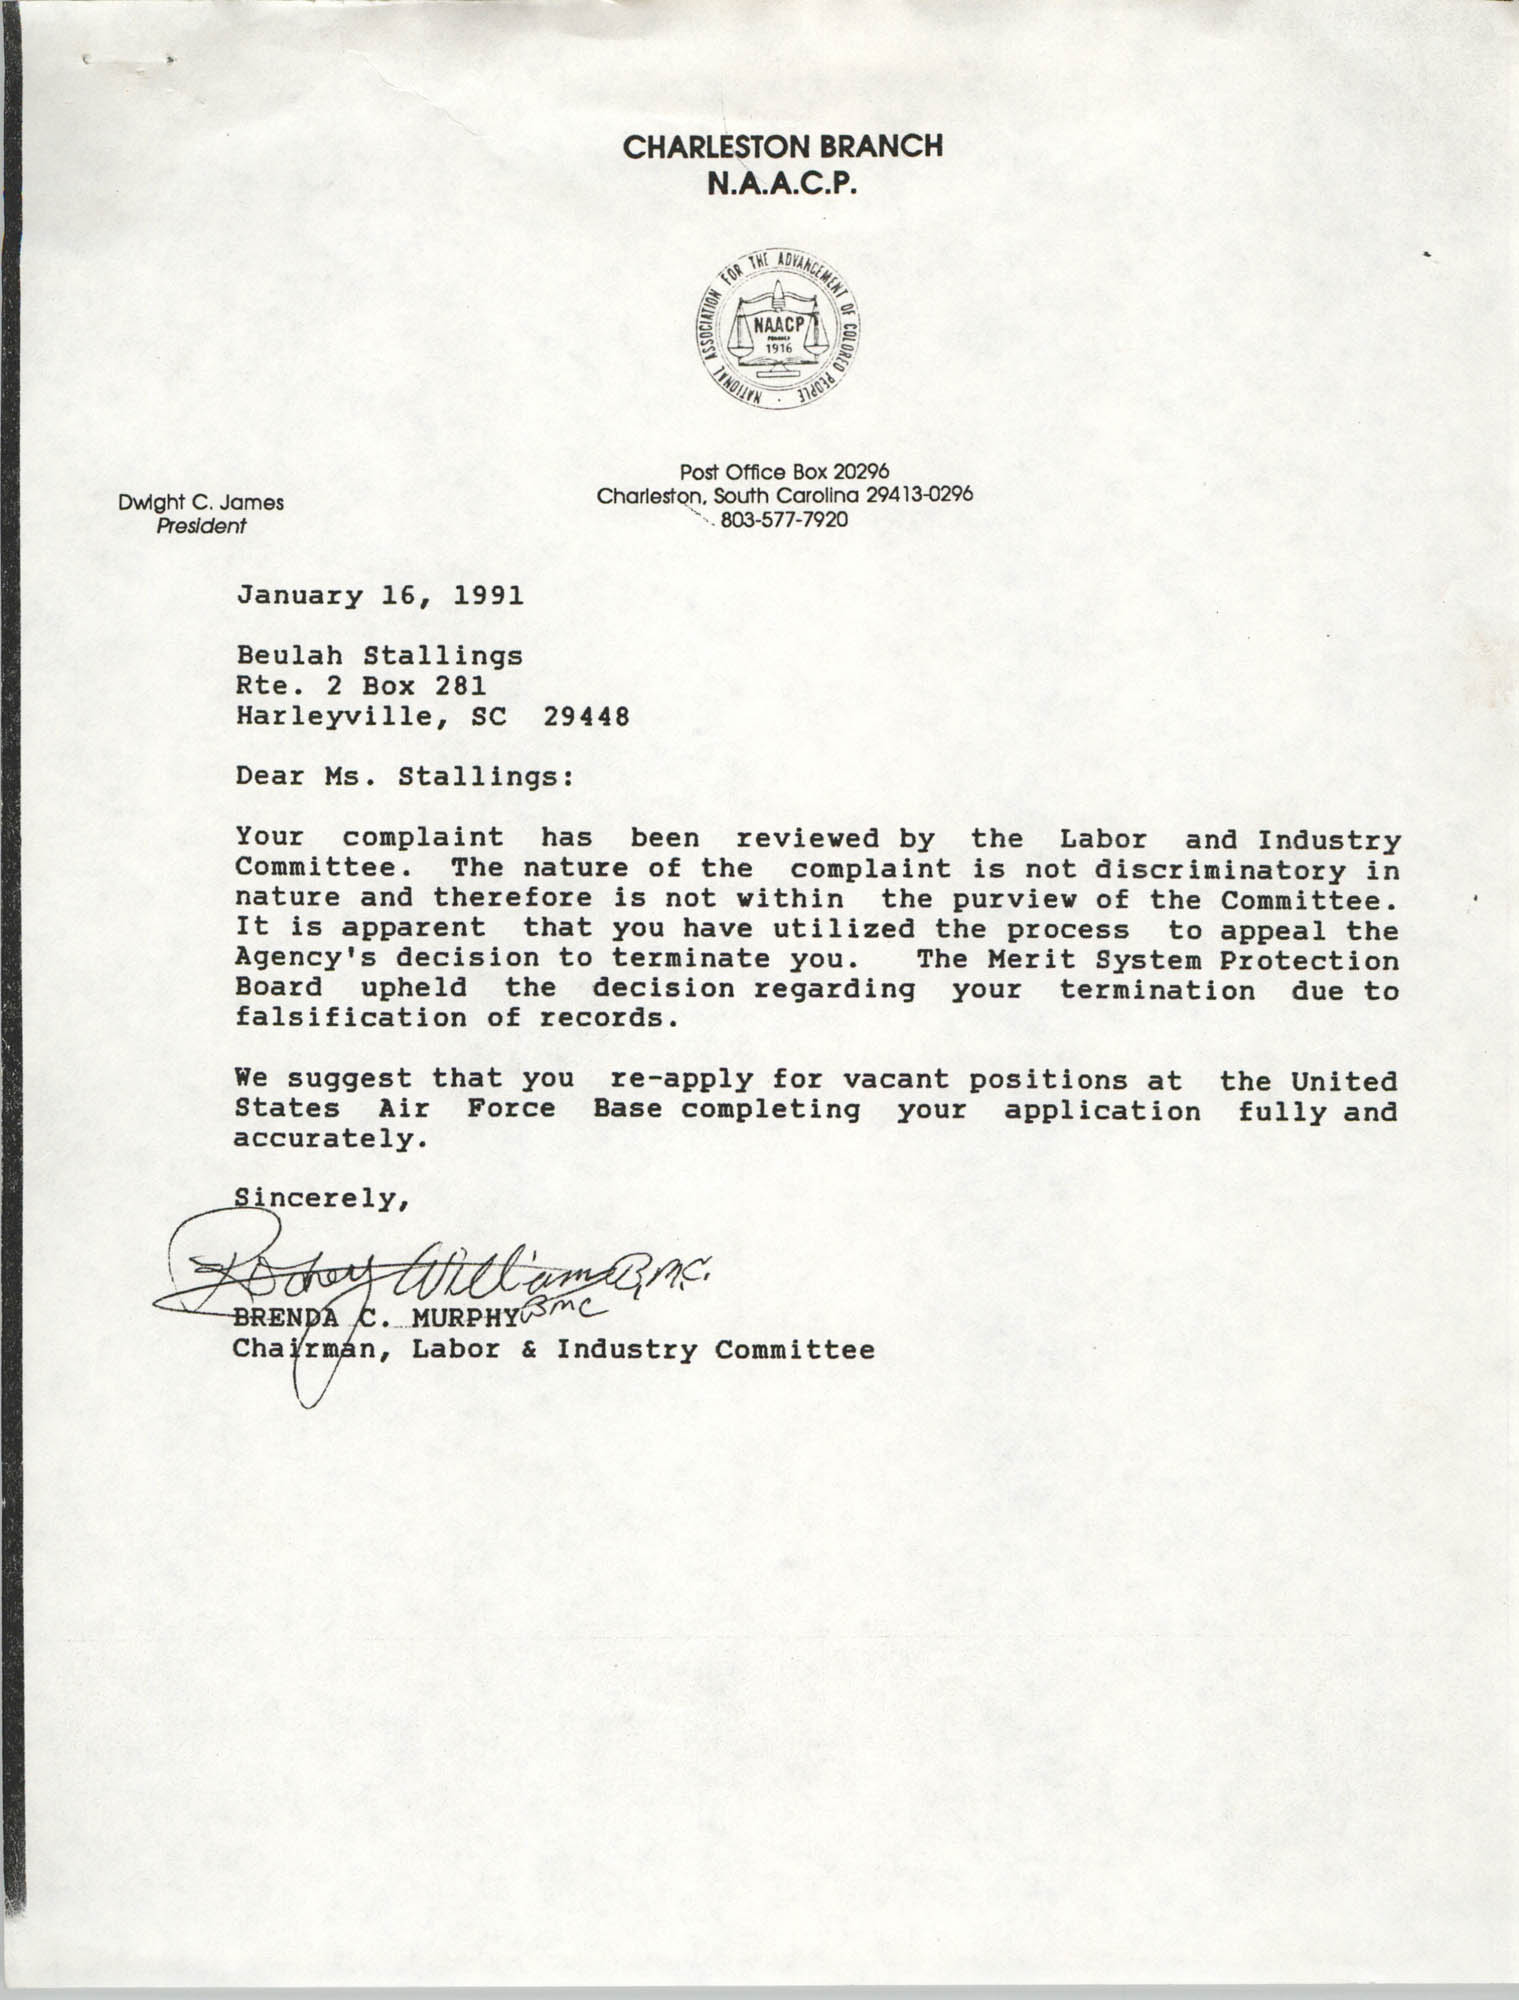 Letter from Brenda C. Murphy to Beulah Stallings, January 16, 1991